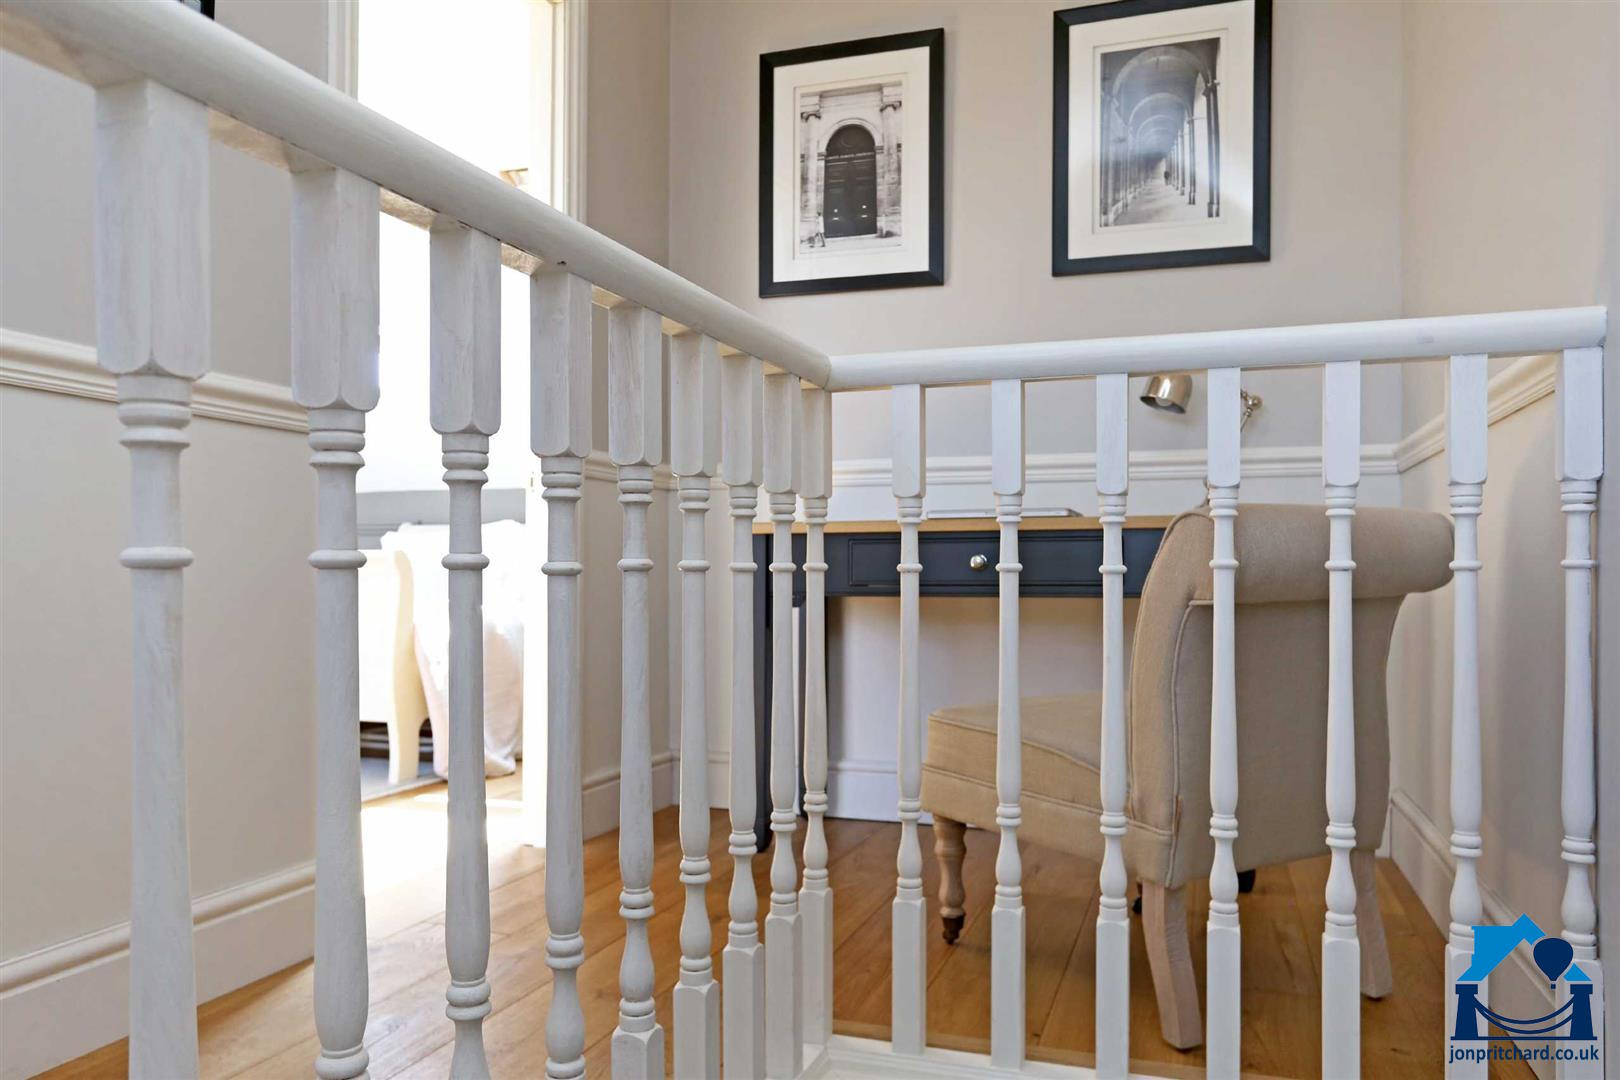 Photo showing a small landing study space in a stylish loft conversion featuring traditional staircase spindles painted white.